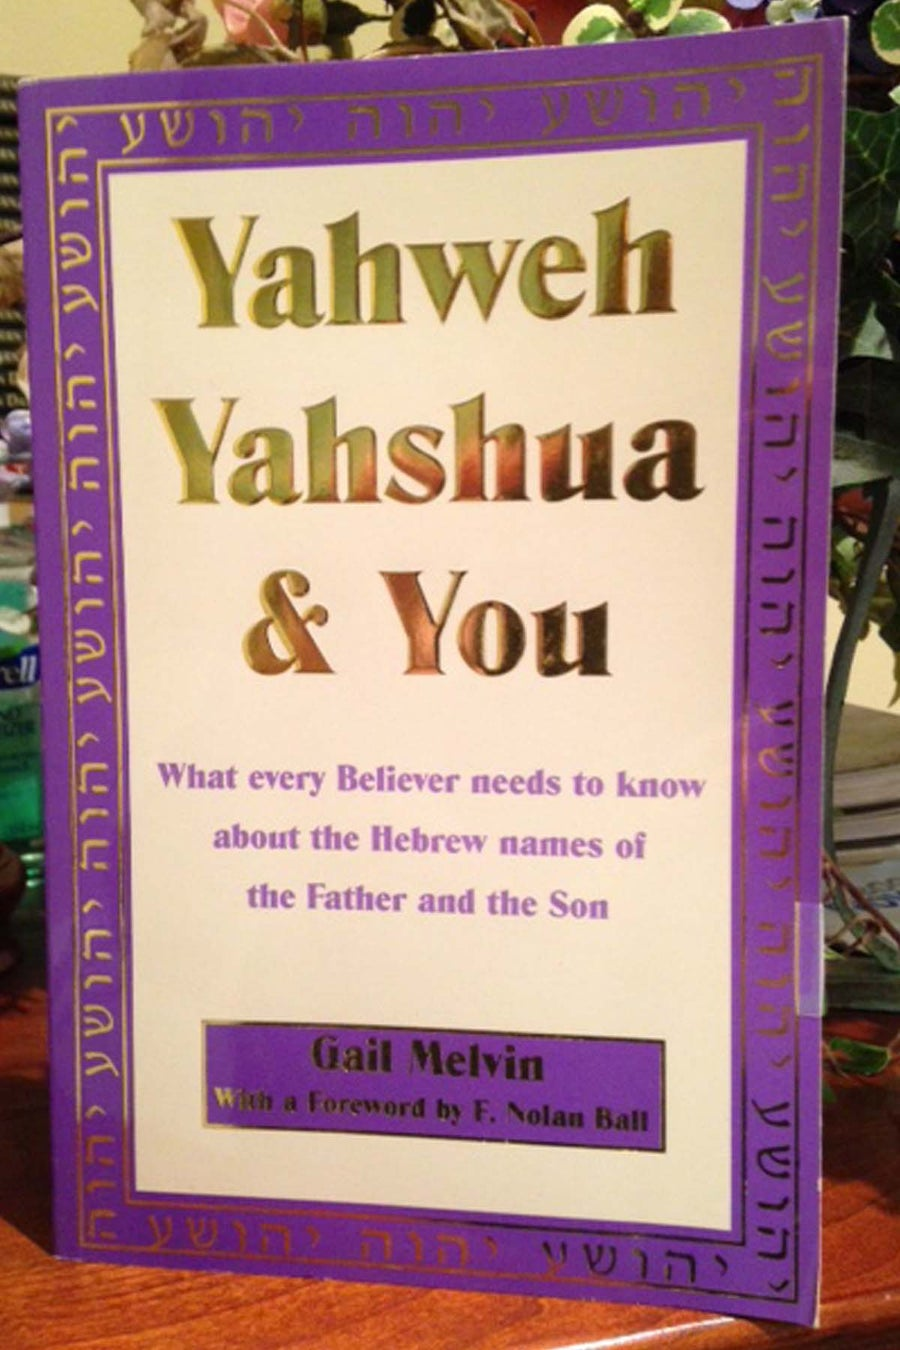 Image of Yahweh Yahshua and You